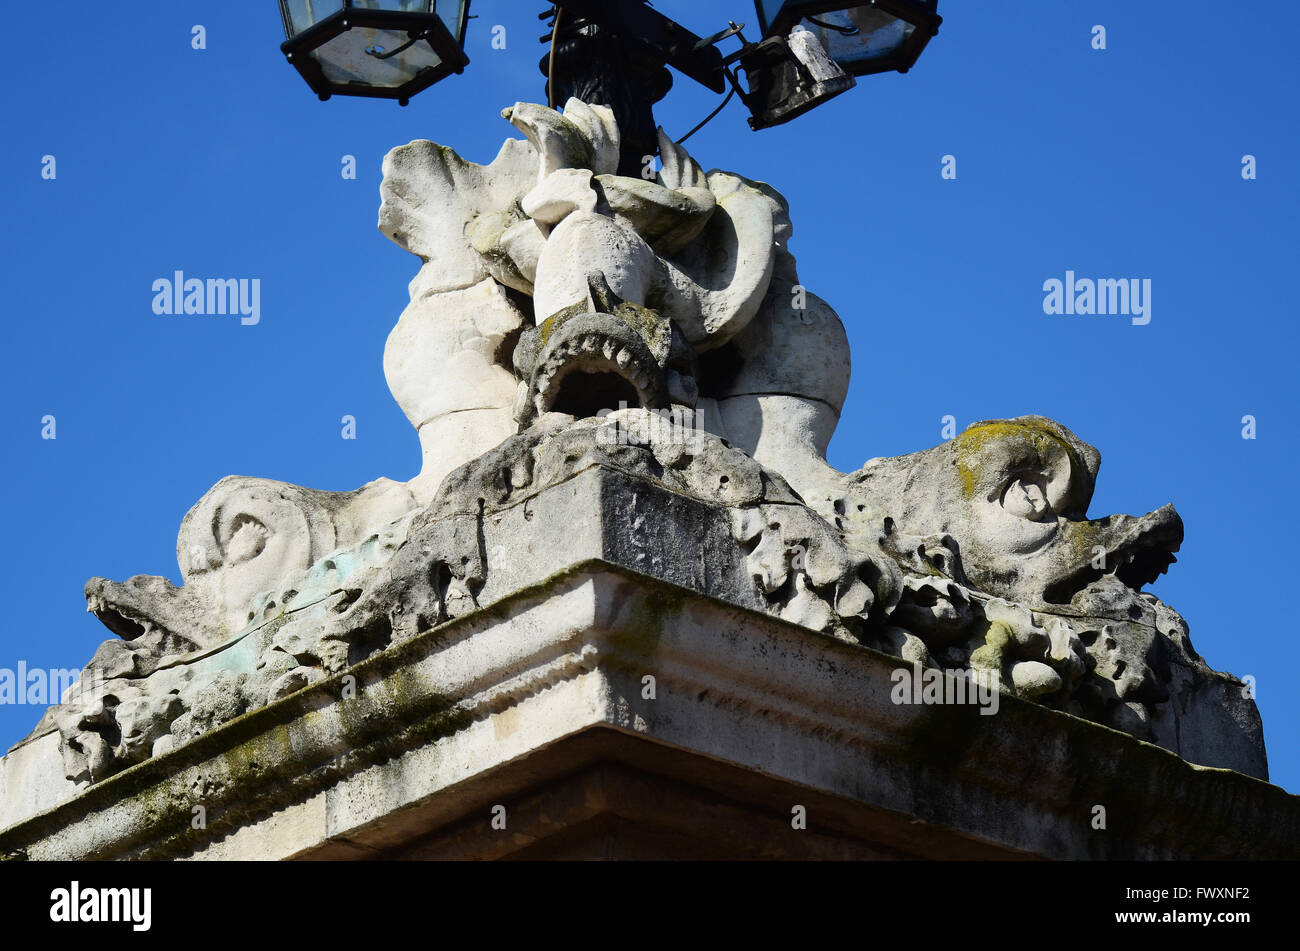 Buckingham Palace is the London residence and principal workplace of the reigning monarch of the UK. East face detail - Stock Image